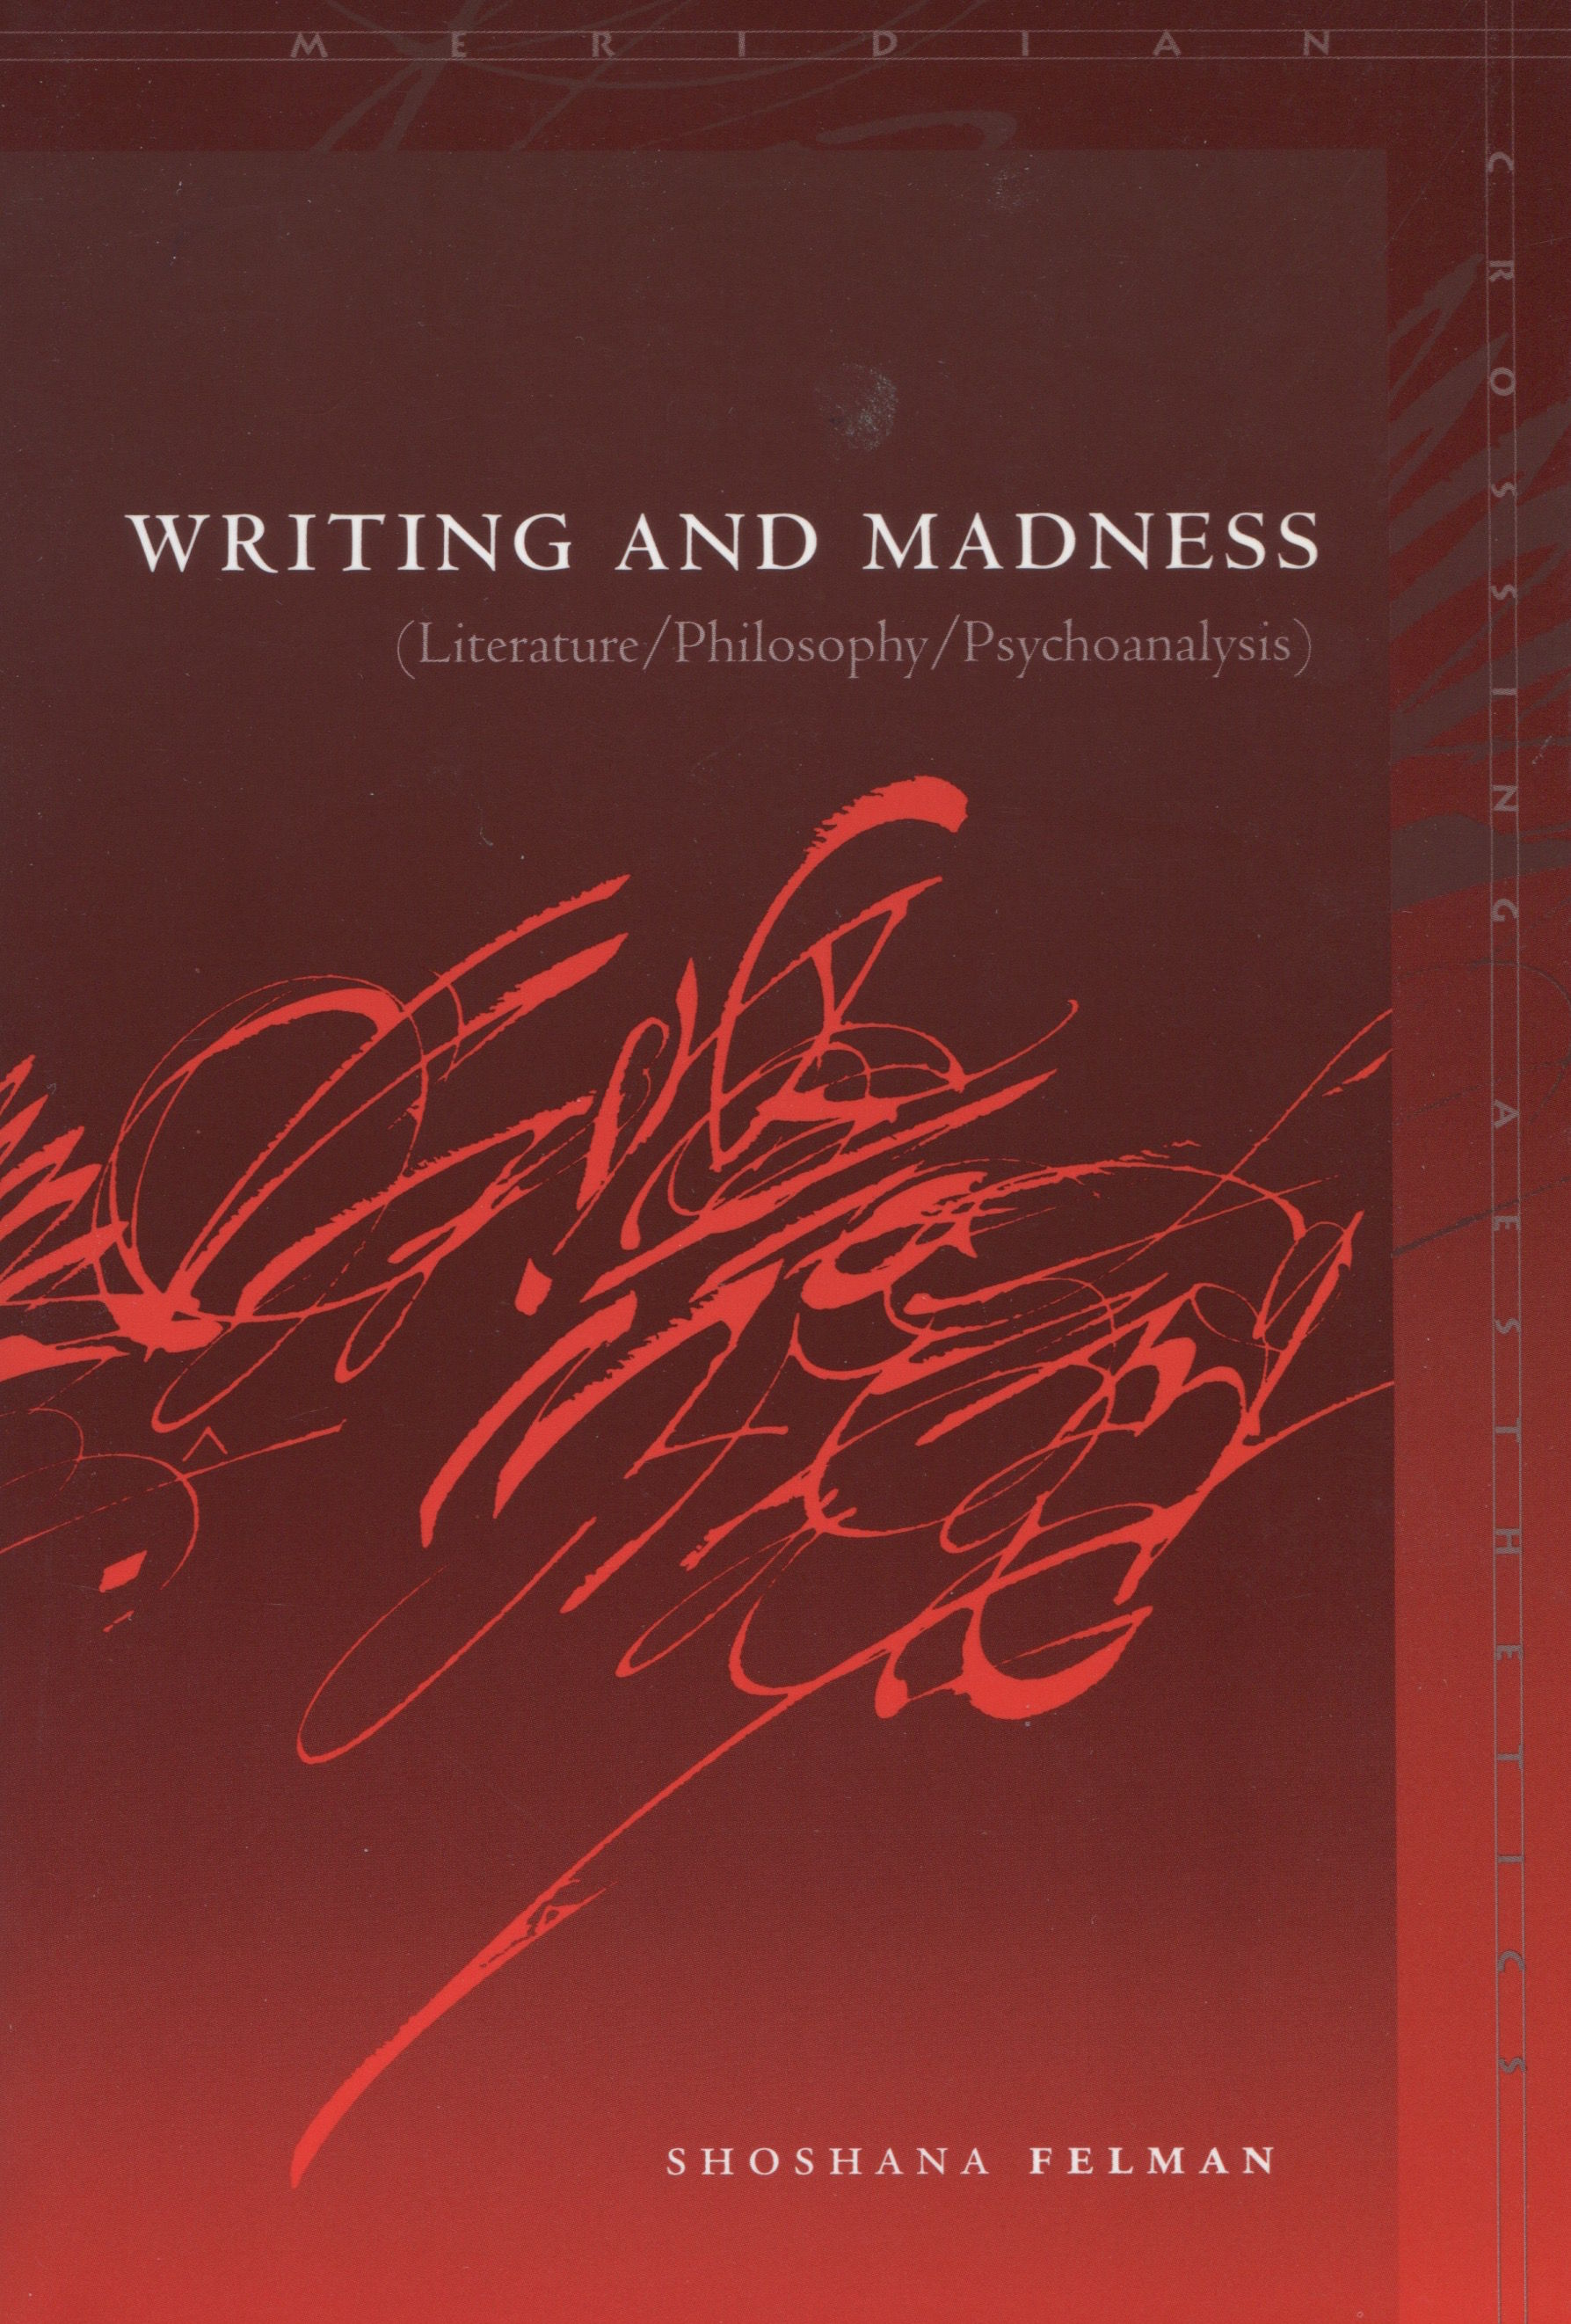 Shoshana felman writing and madness is in their hearts